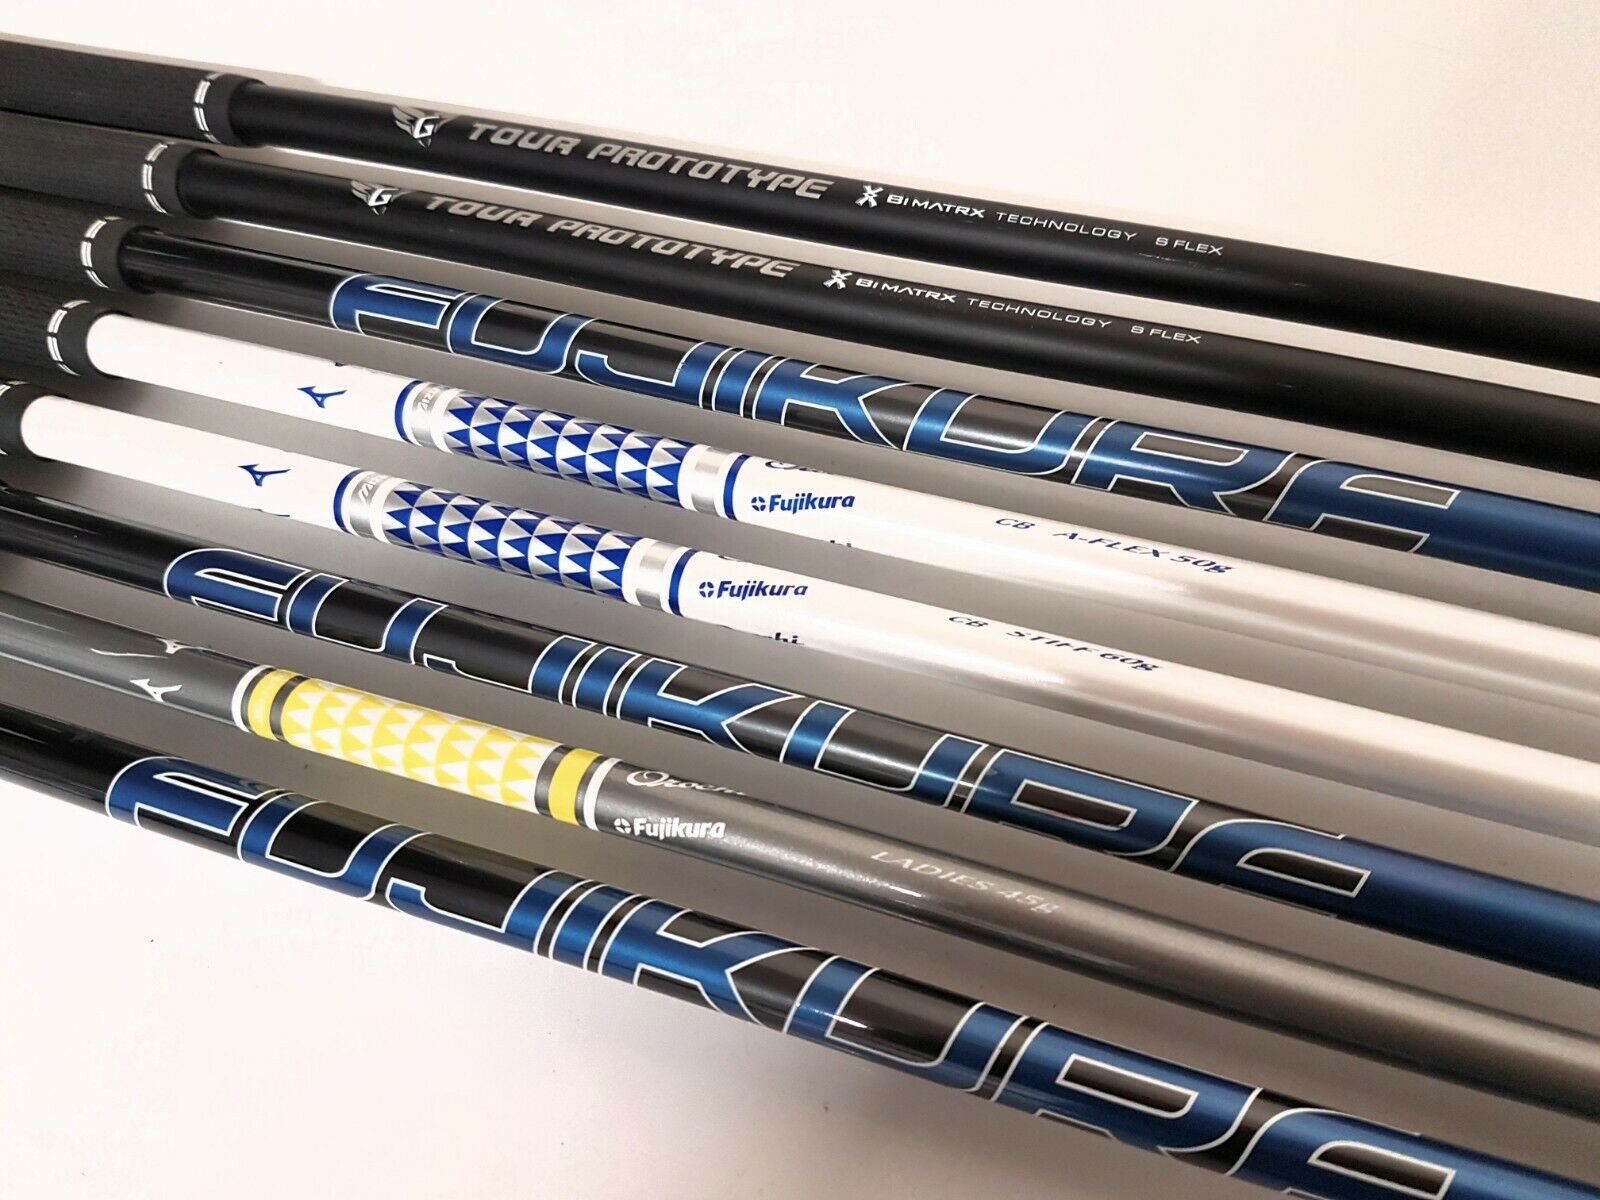 Mizuno Demo Shafts - Driver and 3 Wood Shafts - Various Shafts Available